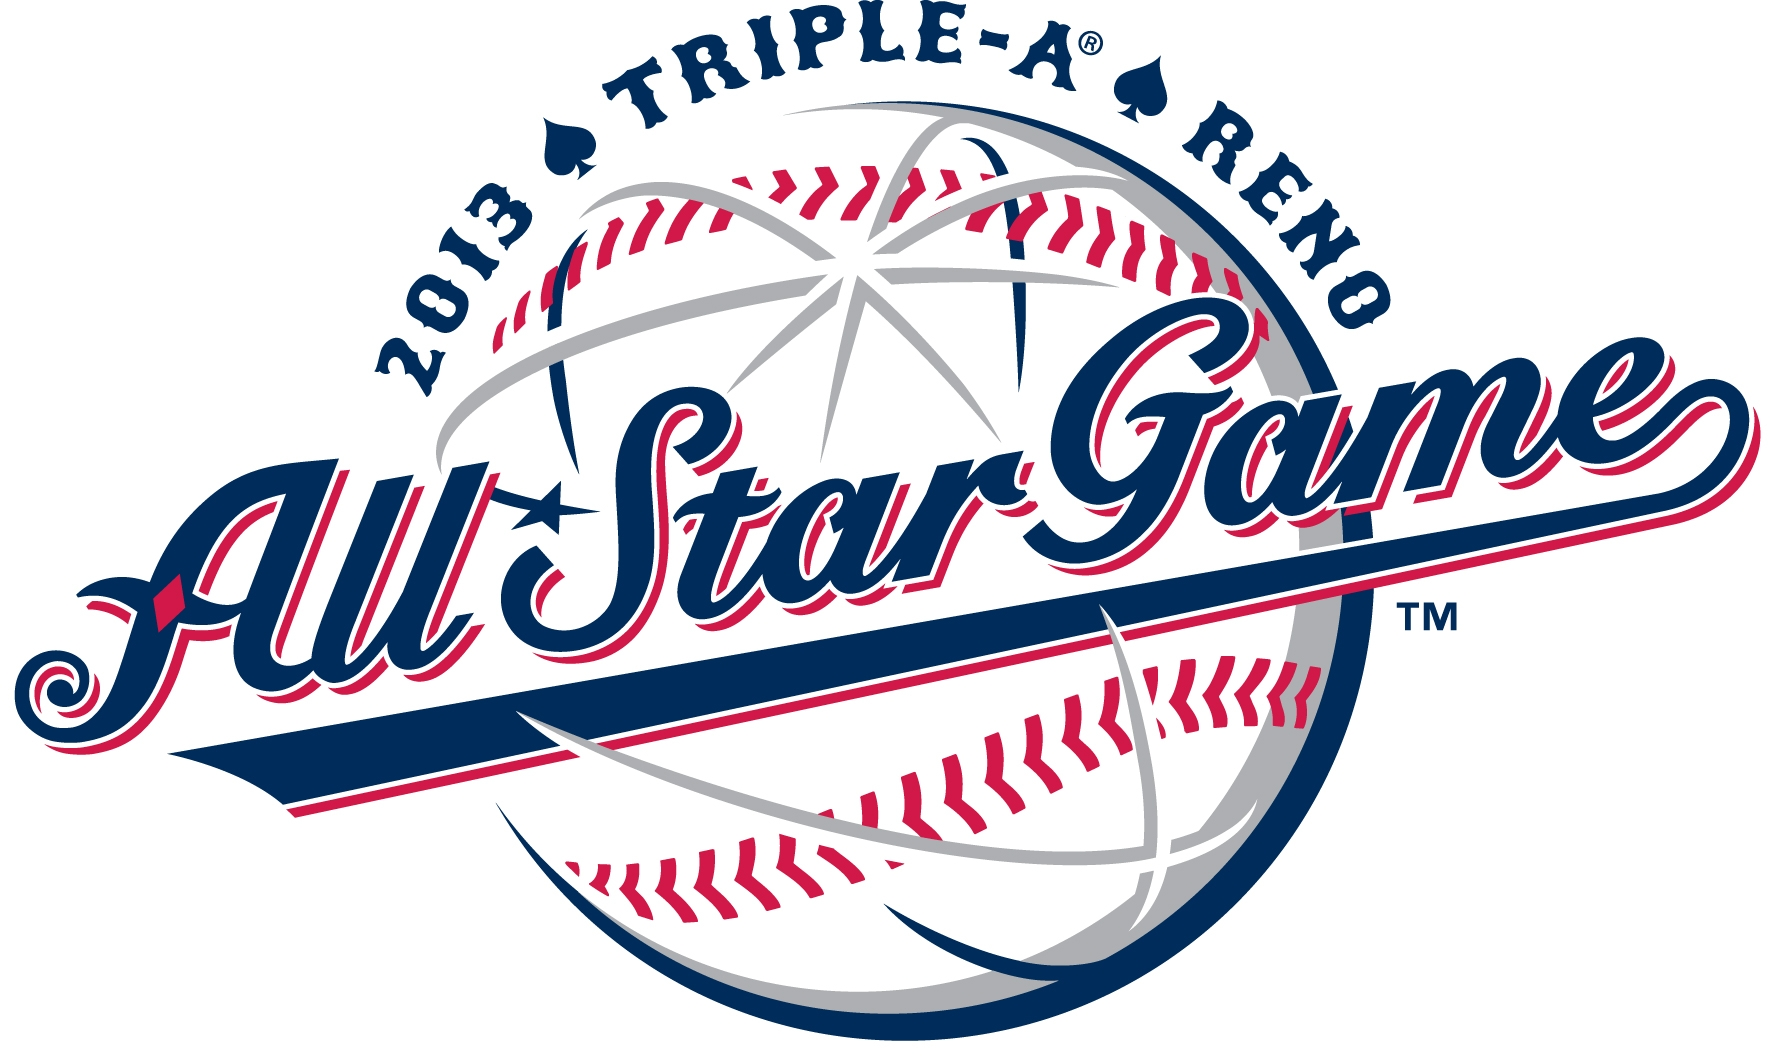 Clipart Of All Star Baseball Logos Collect #48661.